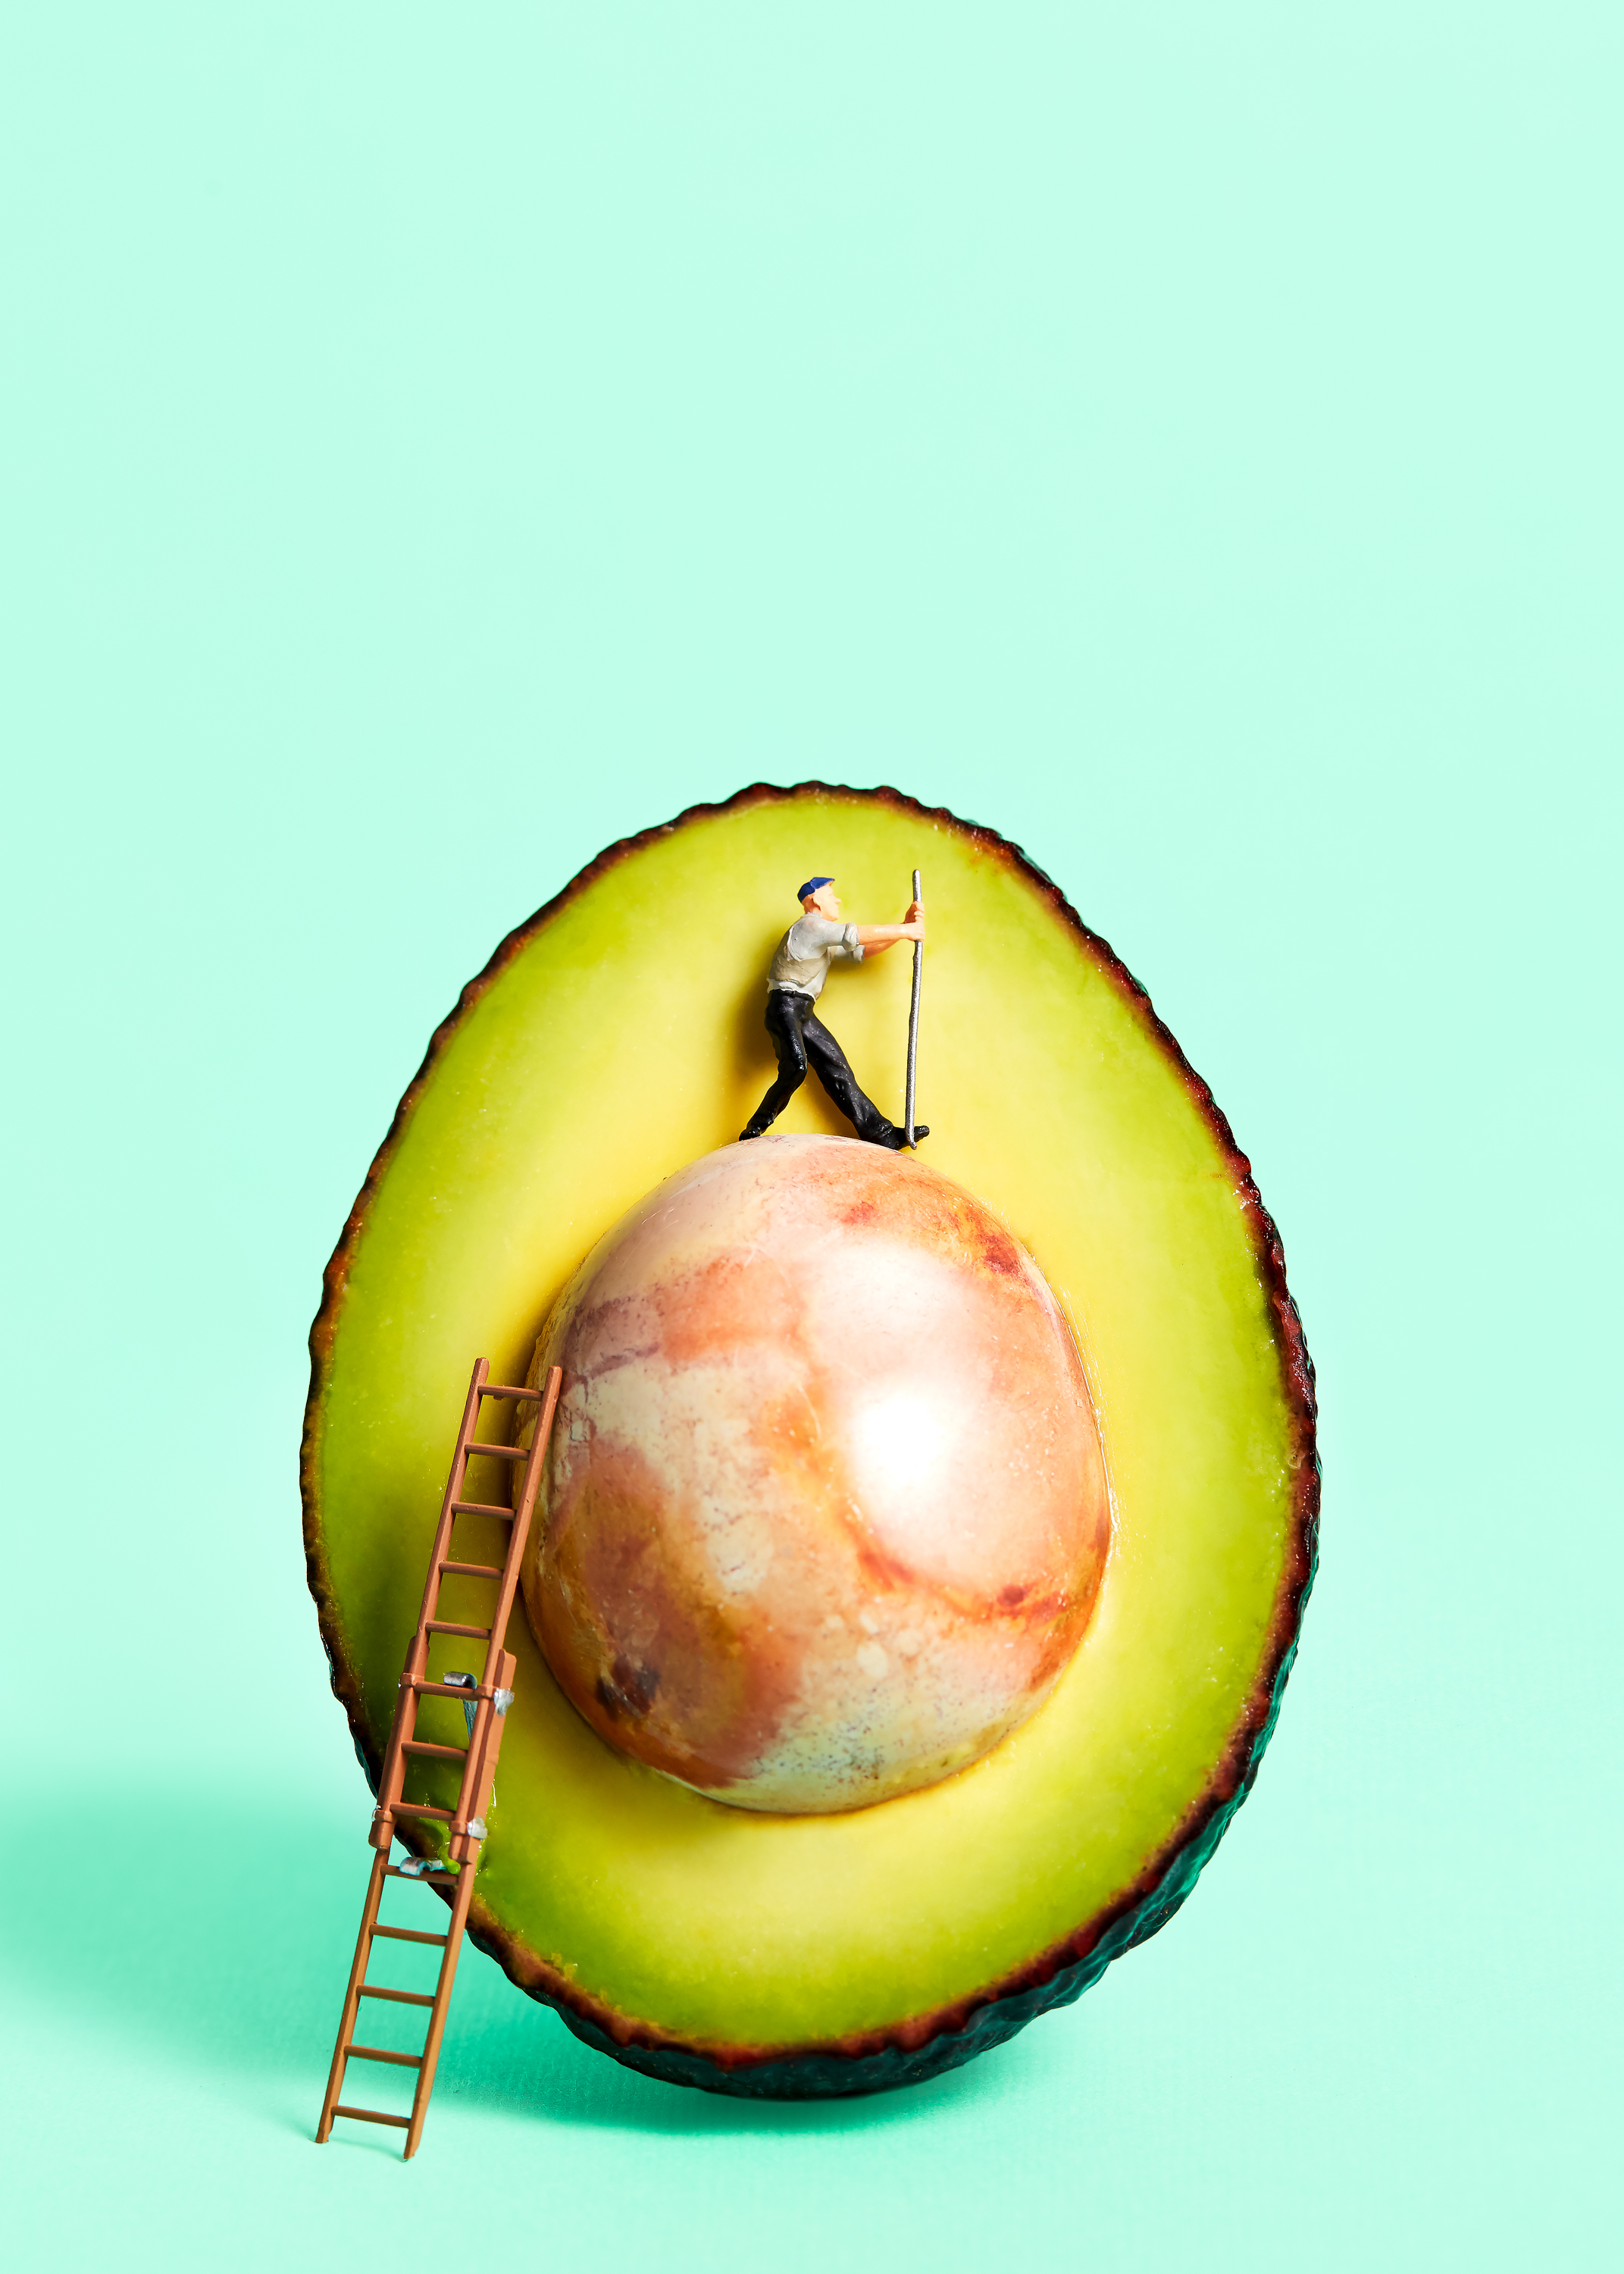 MININGPRODUCE_AVOCADO.jpg